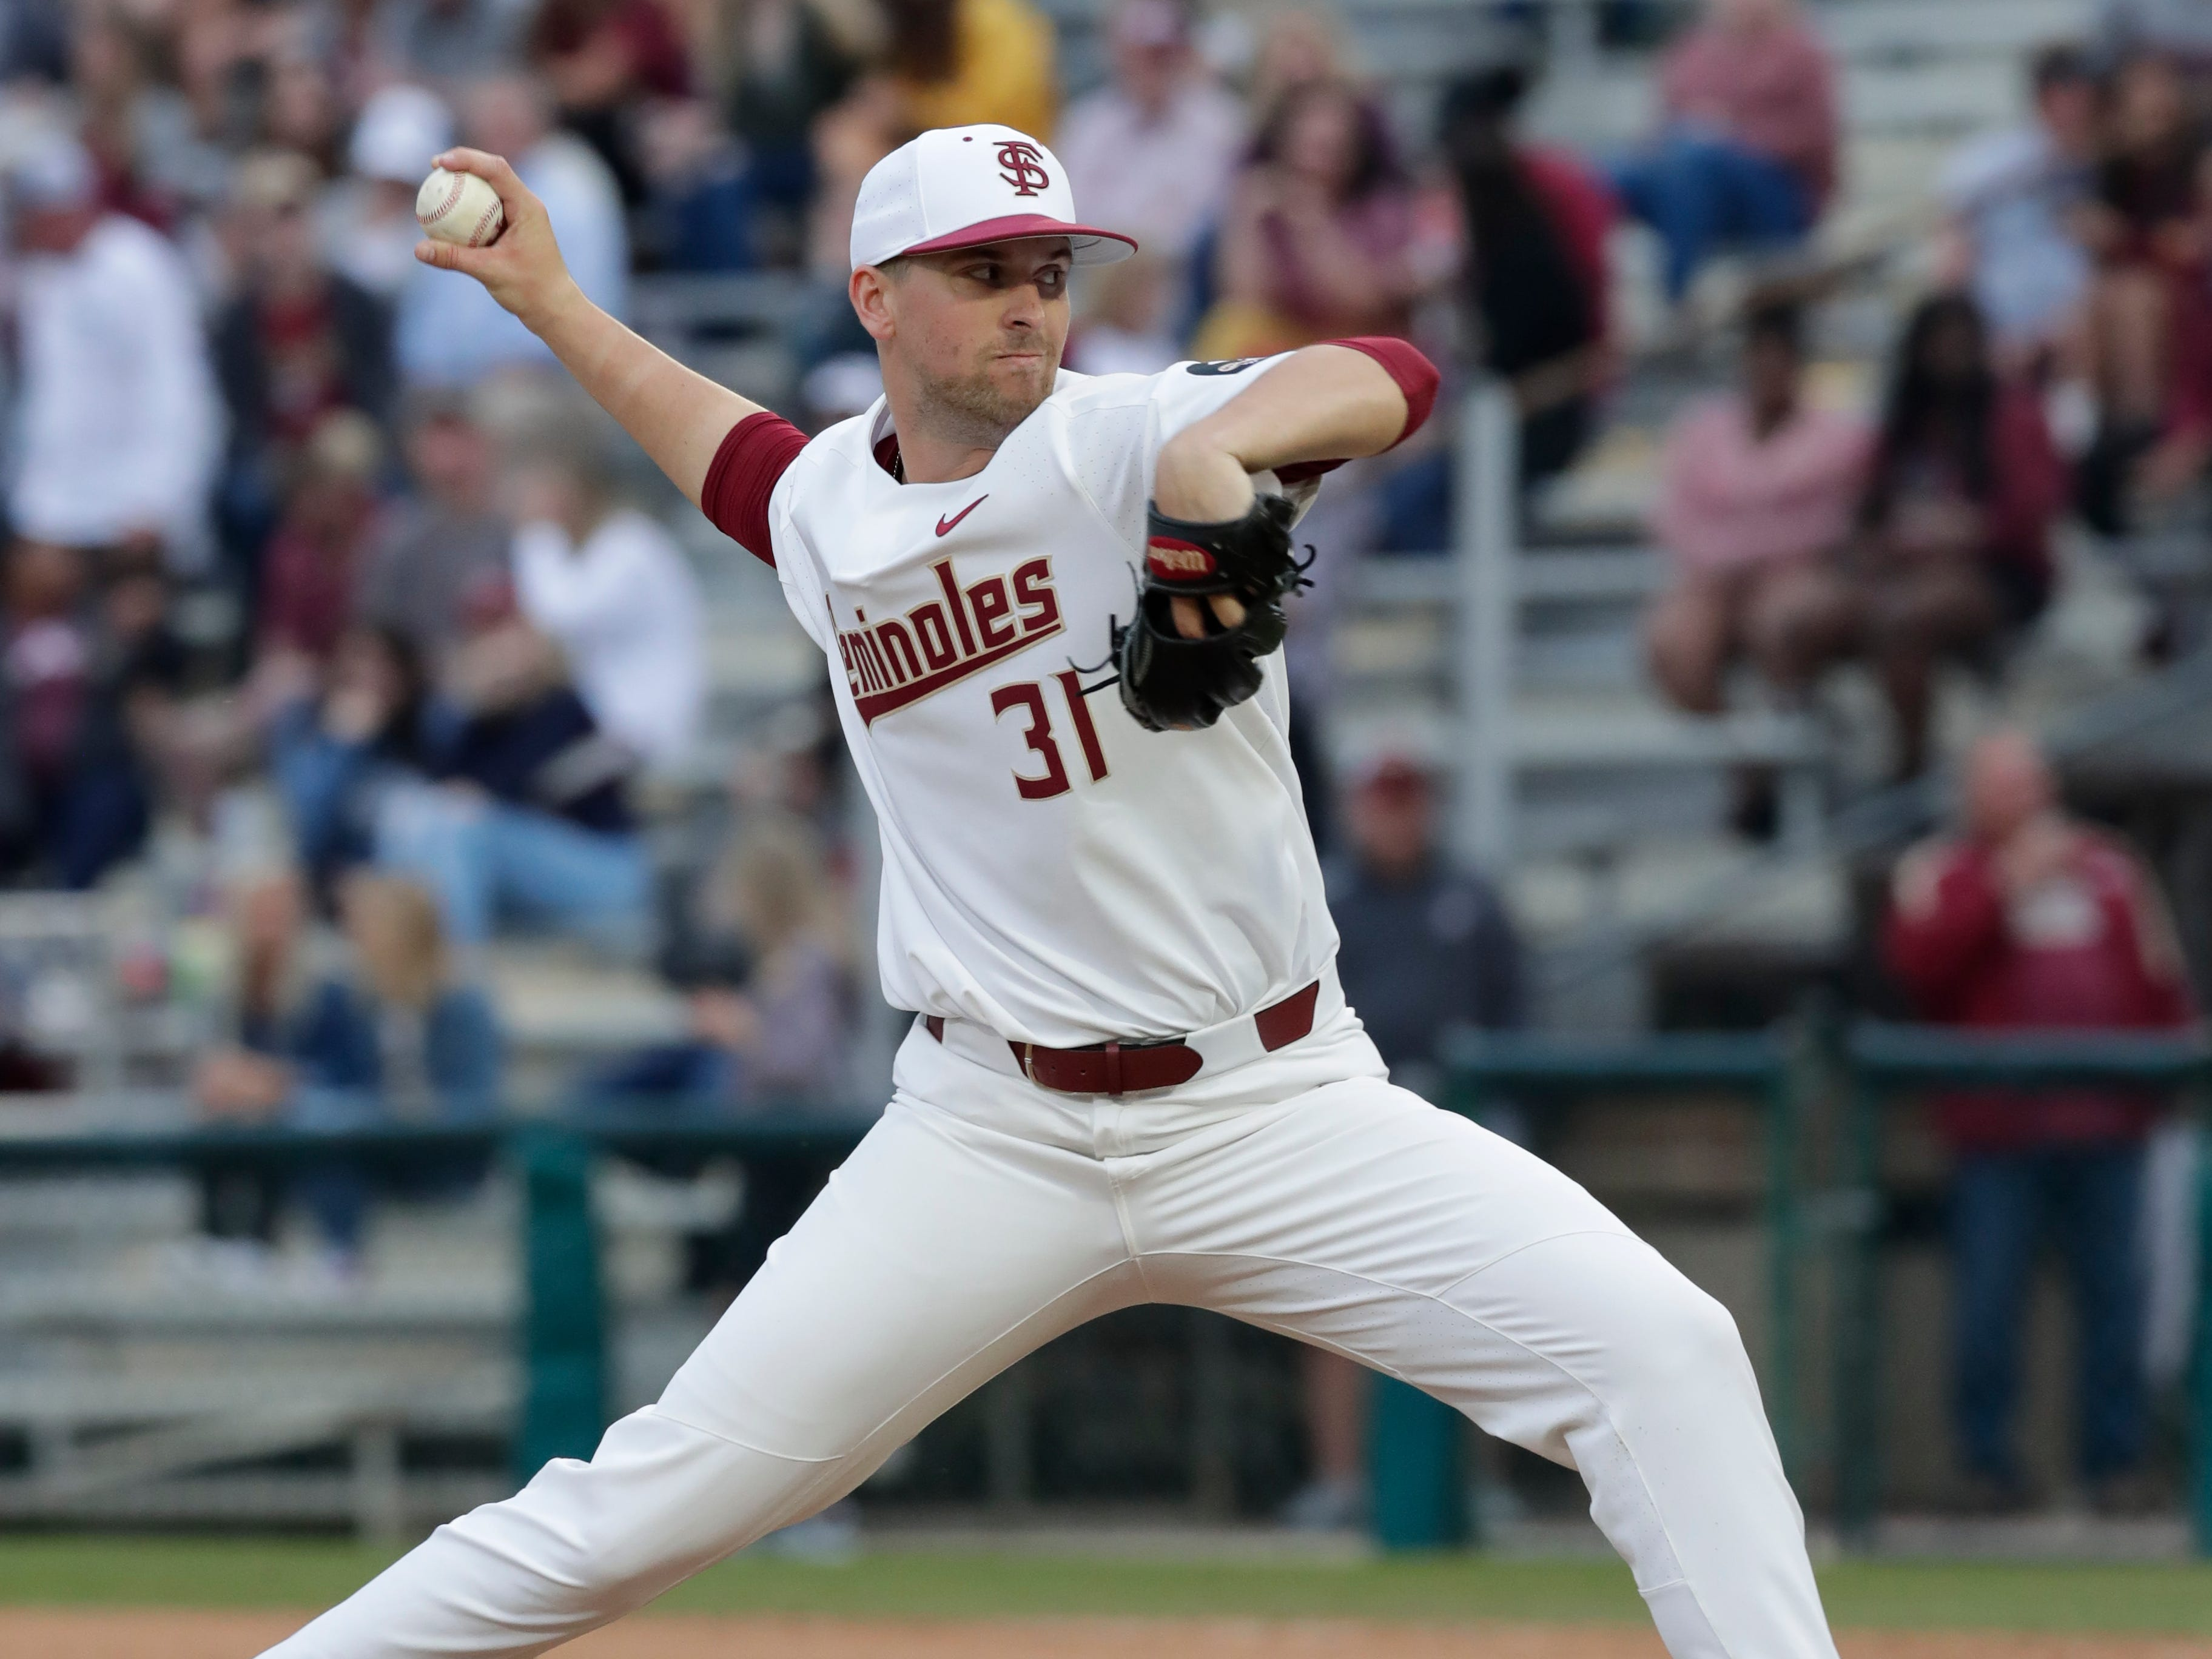 Florida State Seminoles right handed pitcher Conor Grady (31) pitches to the batter as the Florida State Seminoles host the Maine Black Bears in the 2019 season opener game, Friday Feb. 15, 2019.